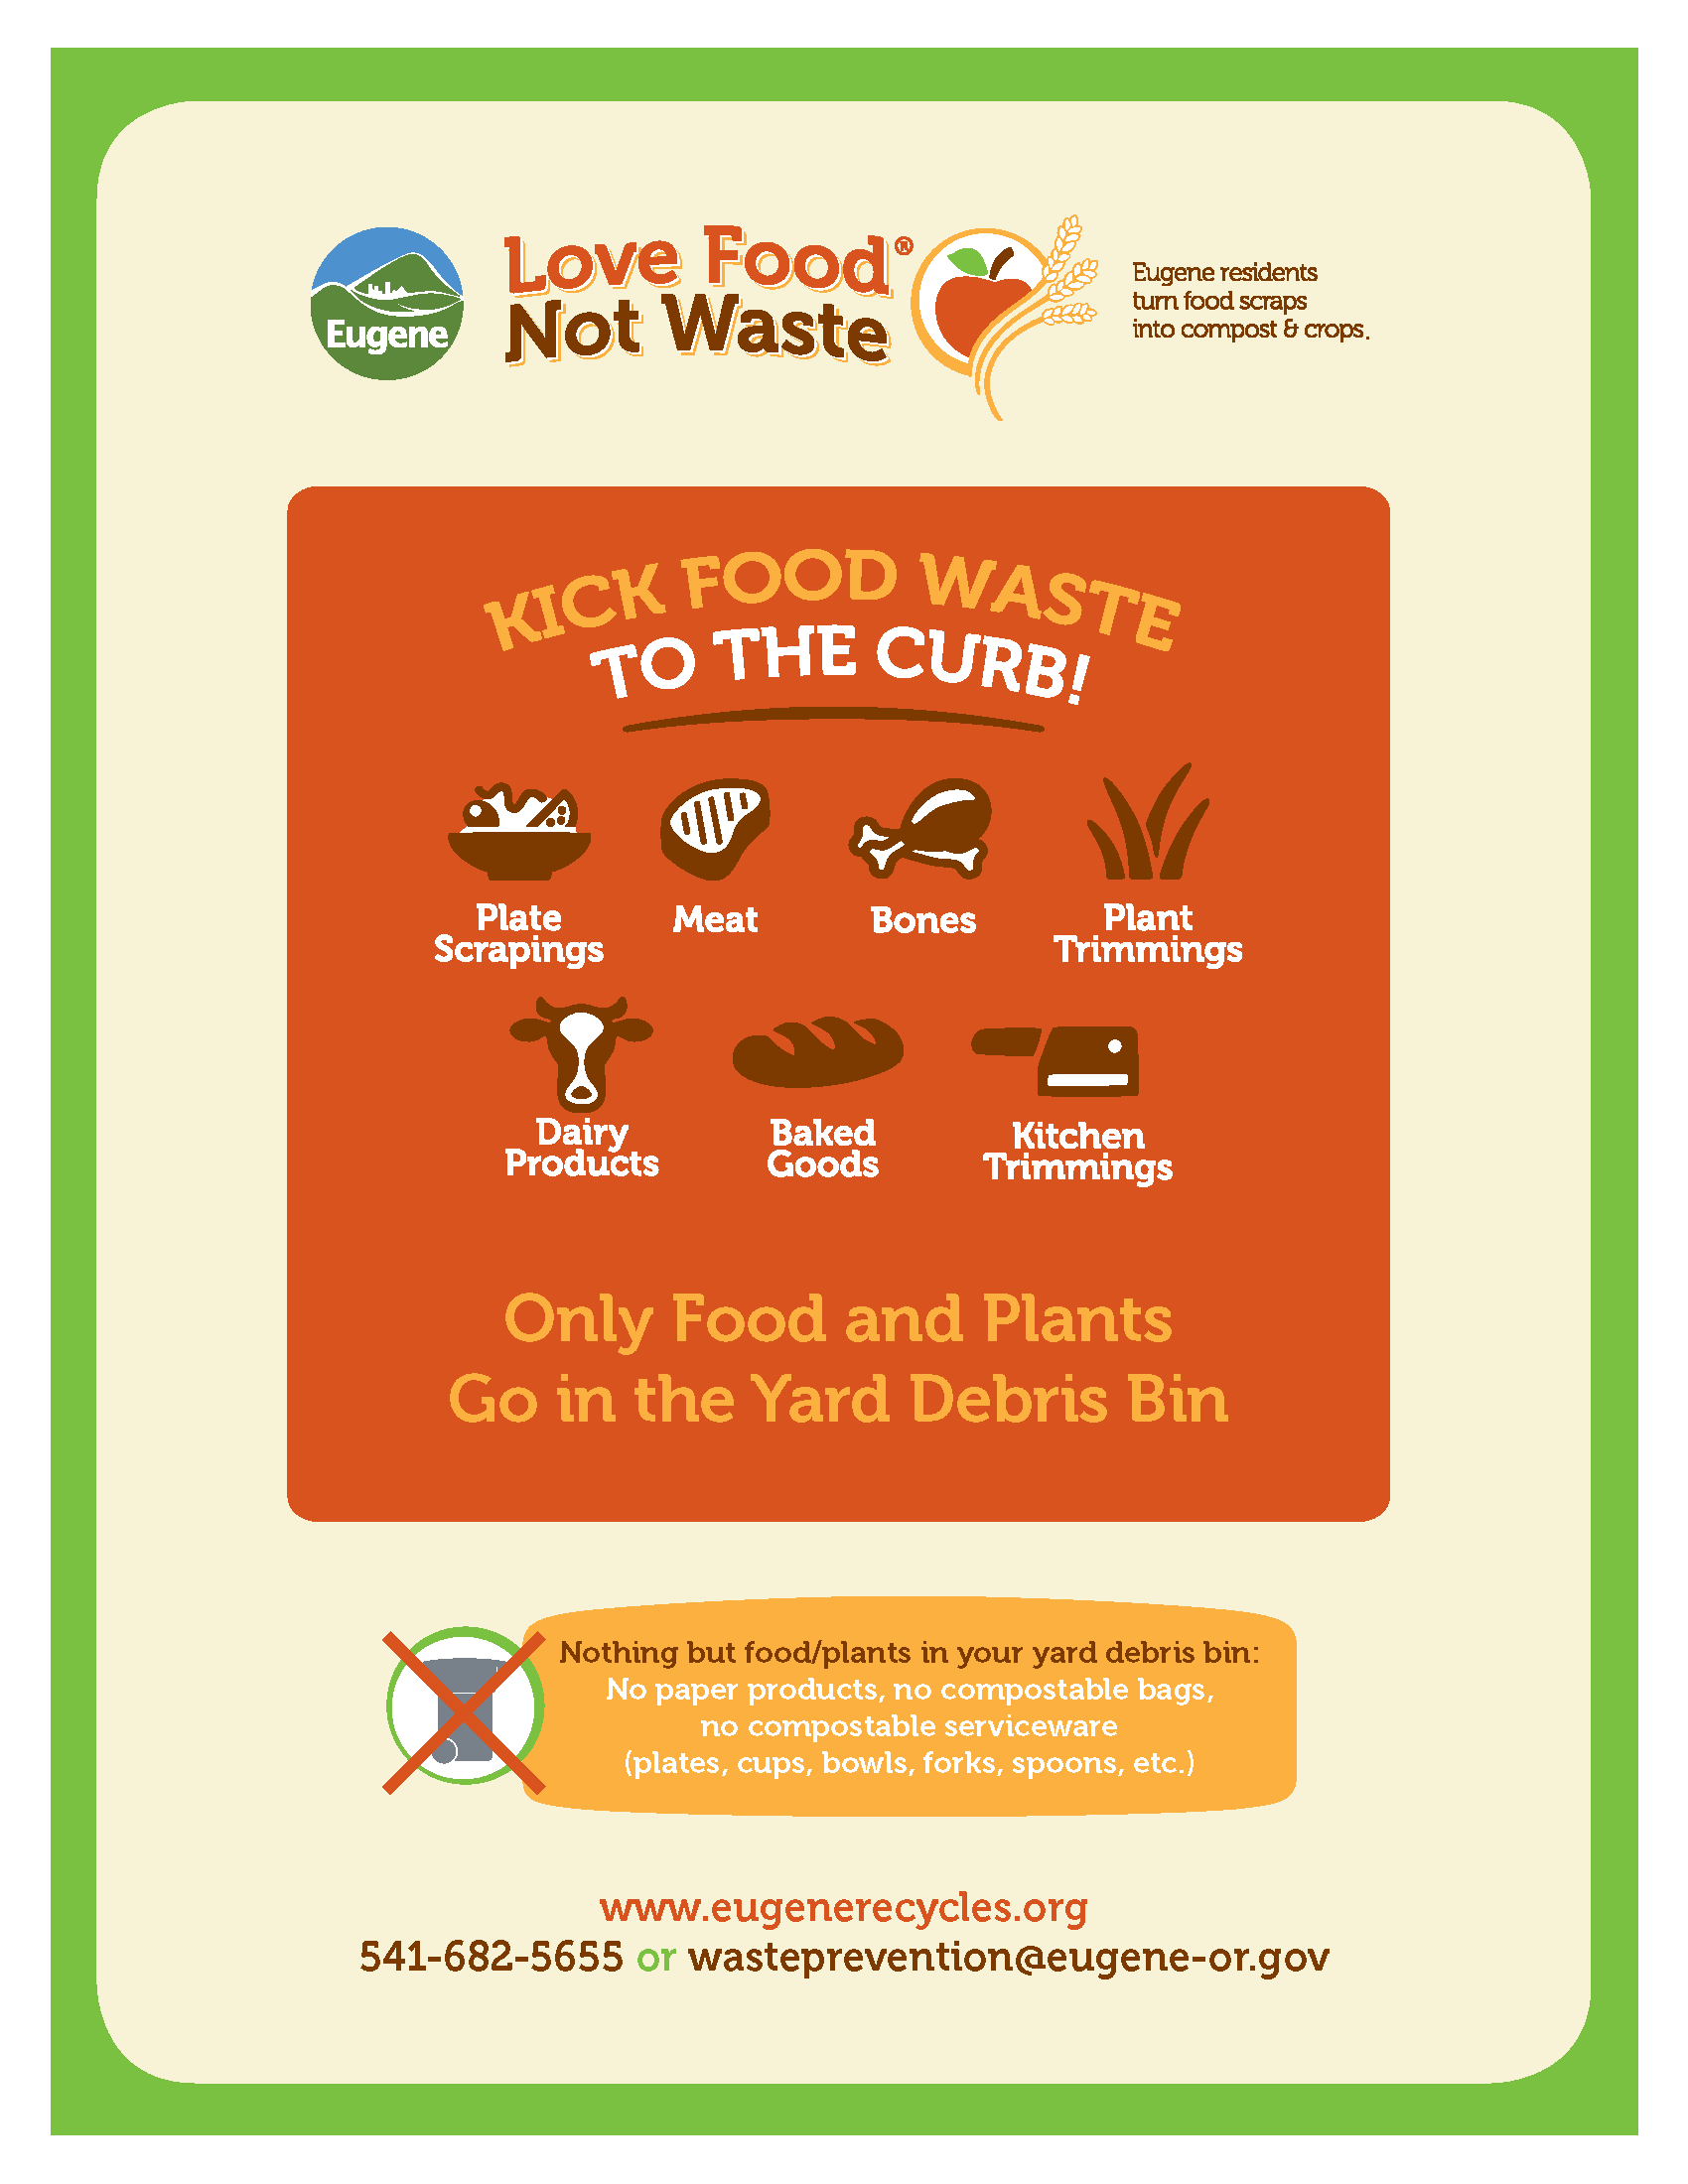 Residential food waste printable. Only food and plants go in the yard debris bin.